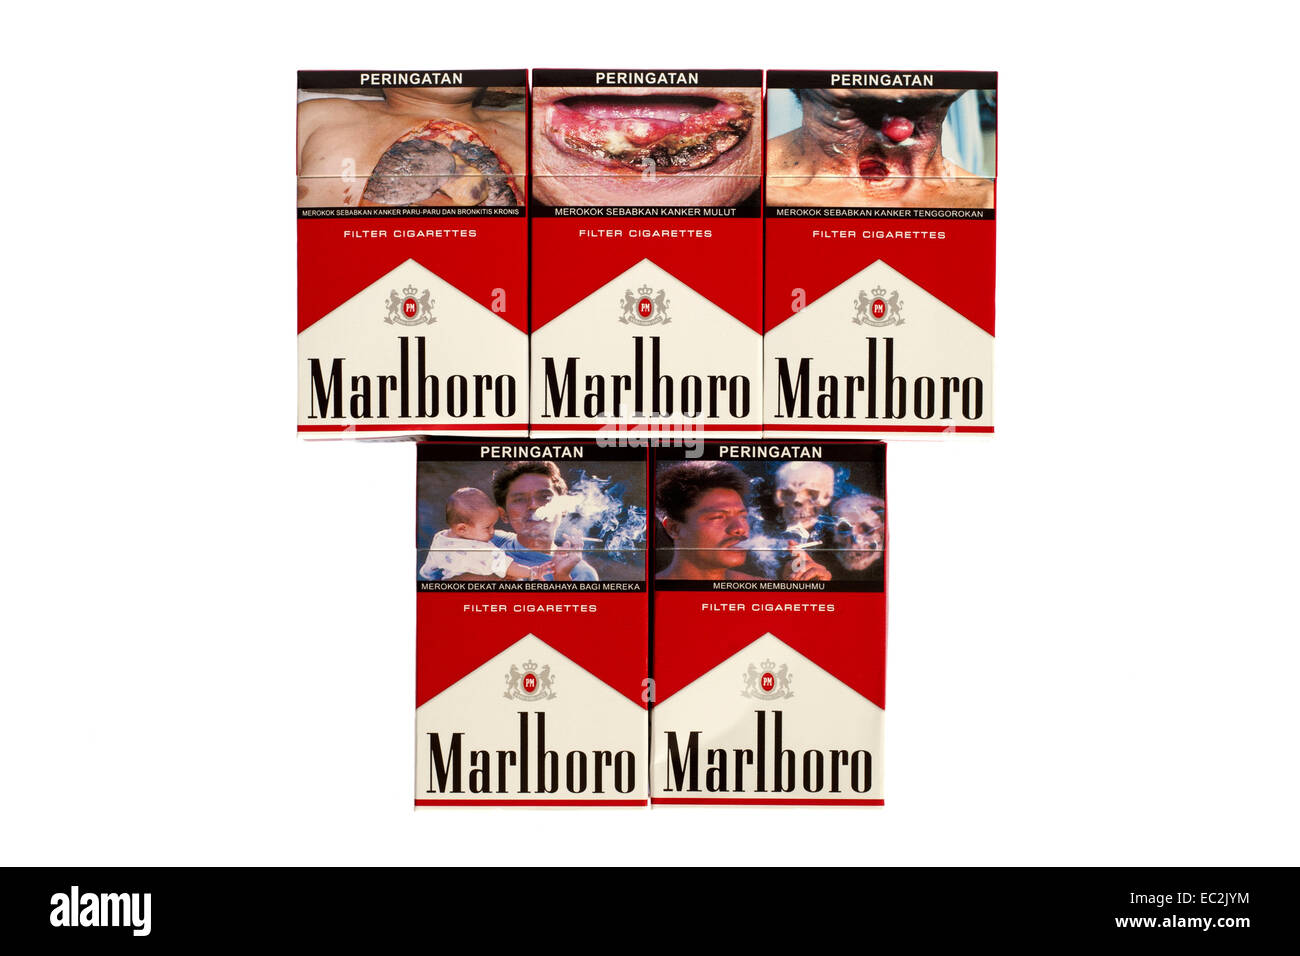 London cigarettes Marlboro brand